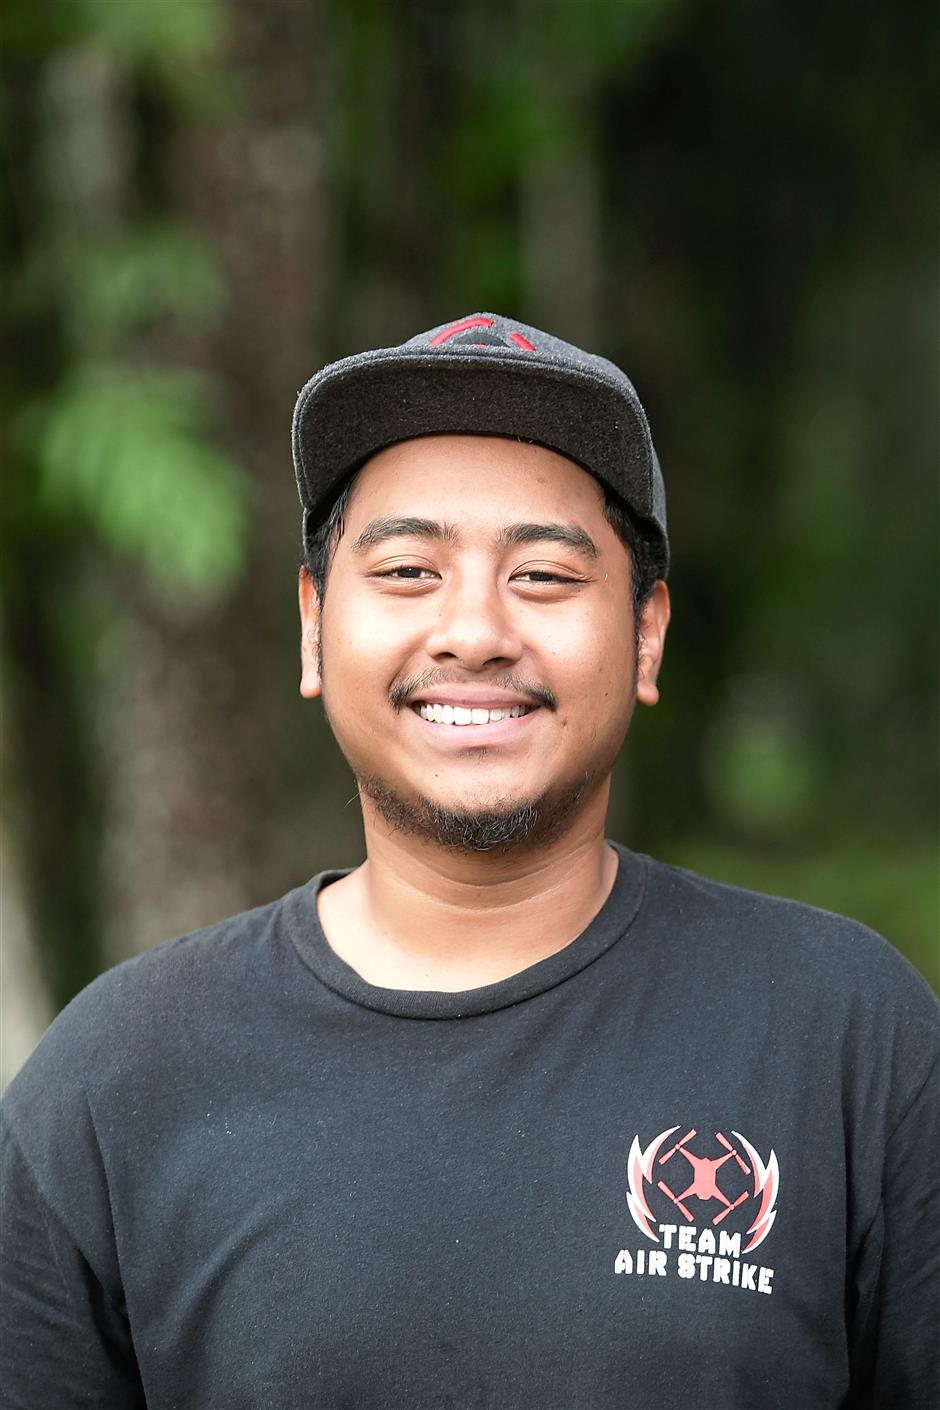 Amir Haziq builds drones to race competitively in local and international drone racing competitions. — AZMAN GHANI/The Star